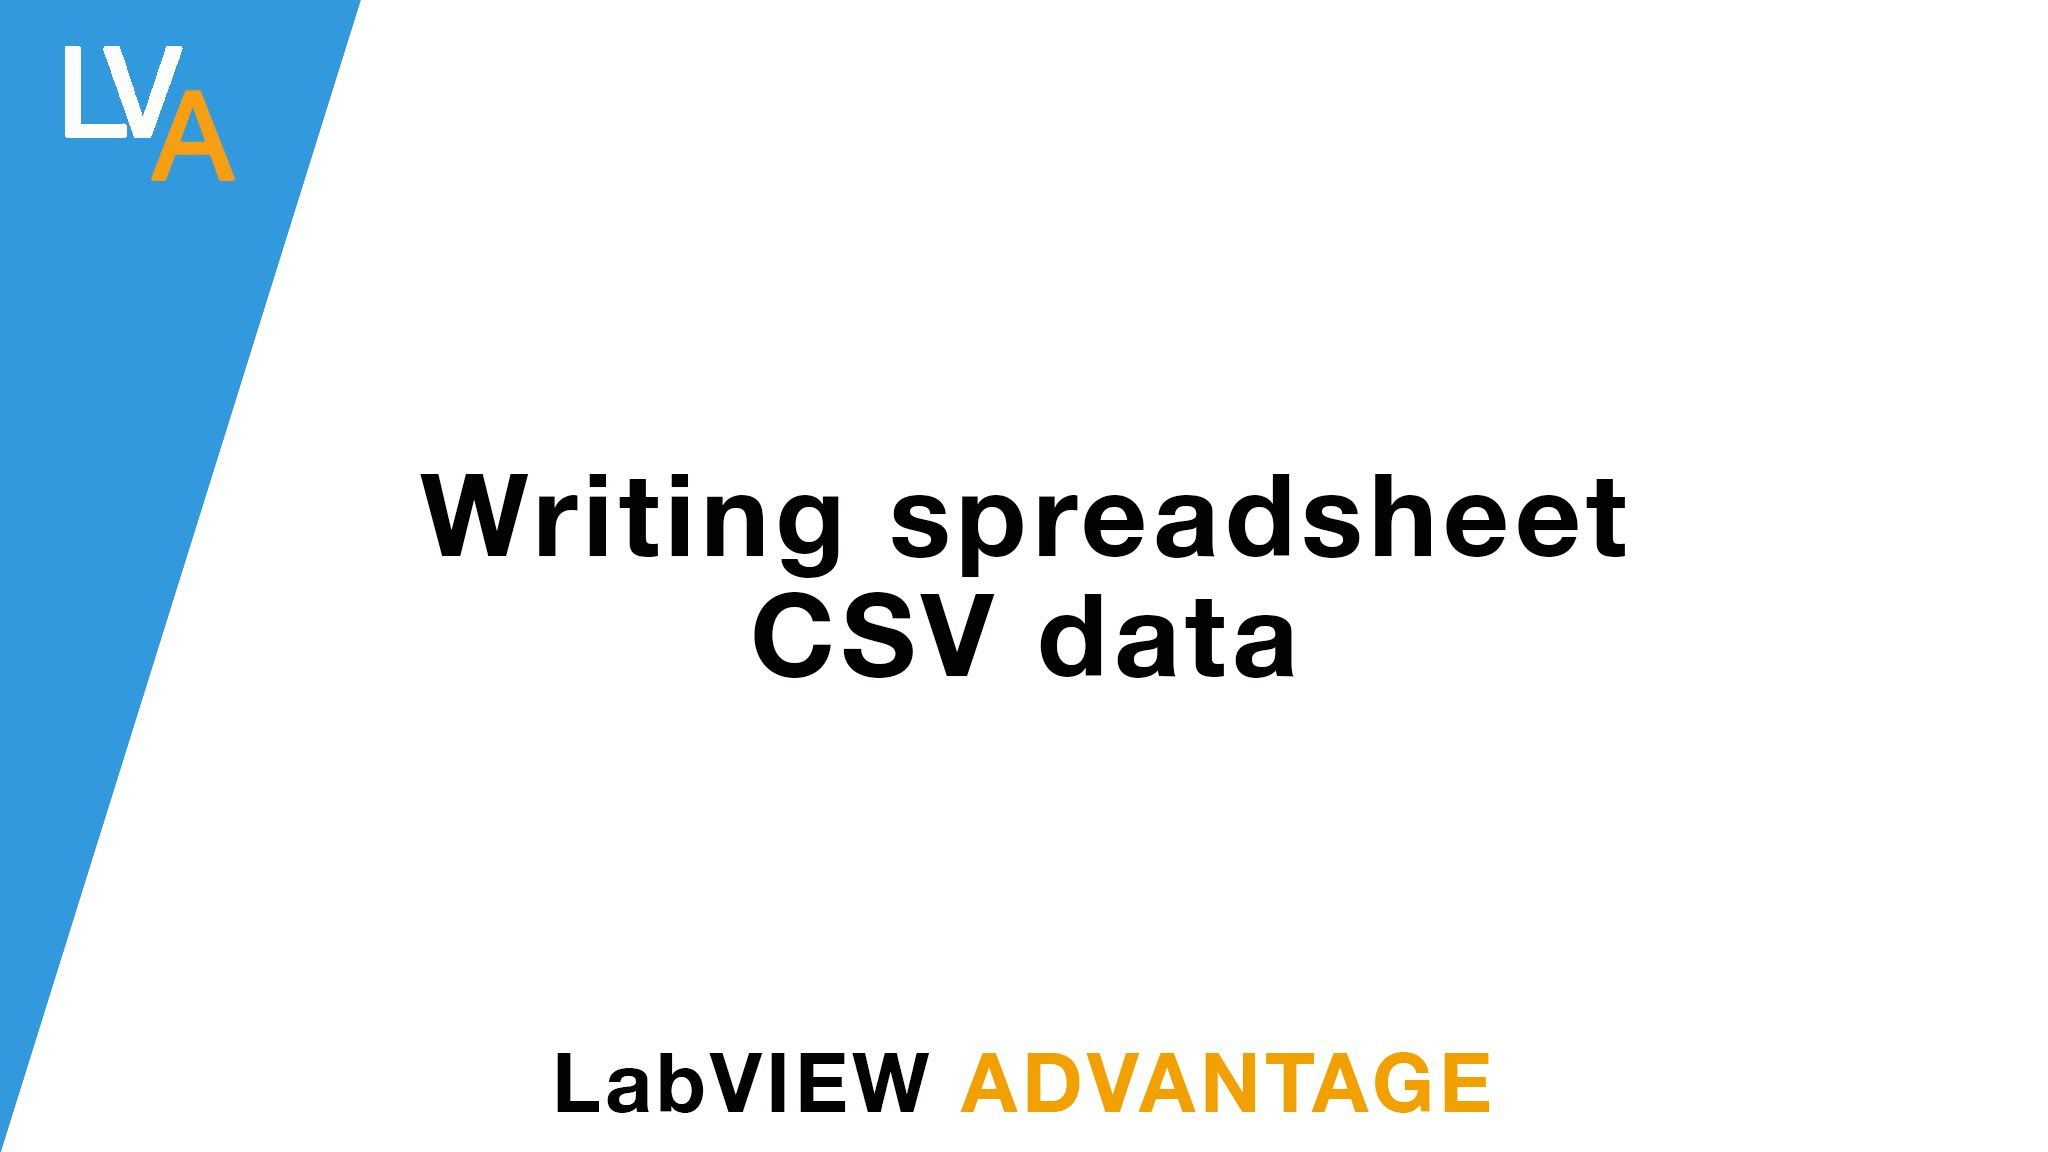 LabVIEW How to Write into a Spreadsheet CSV file | LabVIEW Training